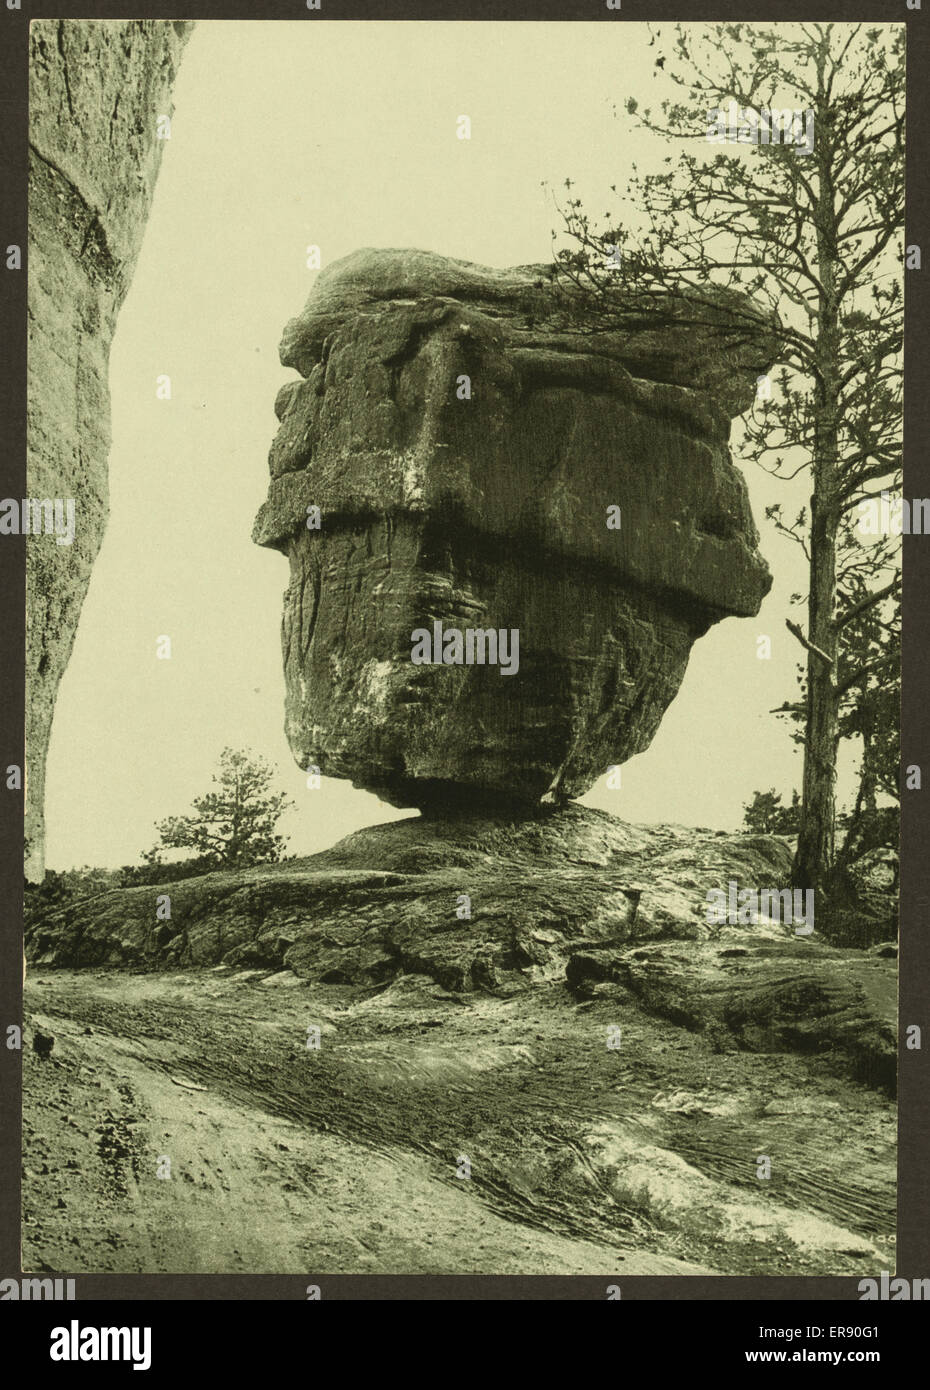 Balanced Rock, Garden of the Gods. Date between 1898 and 1905 - Stock Image